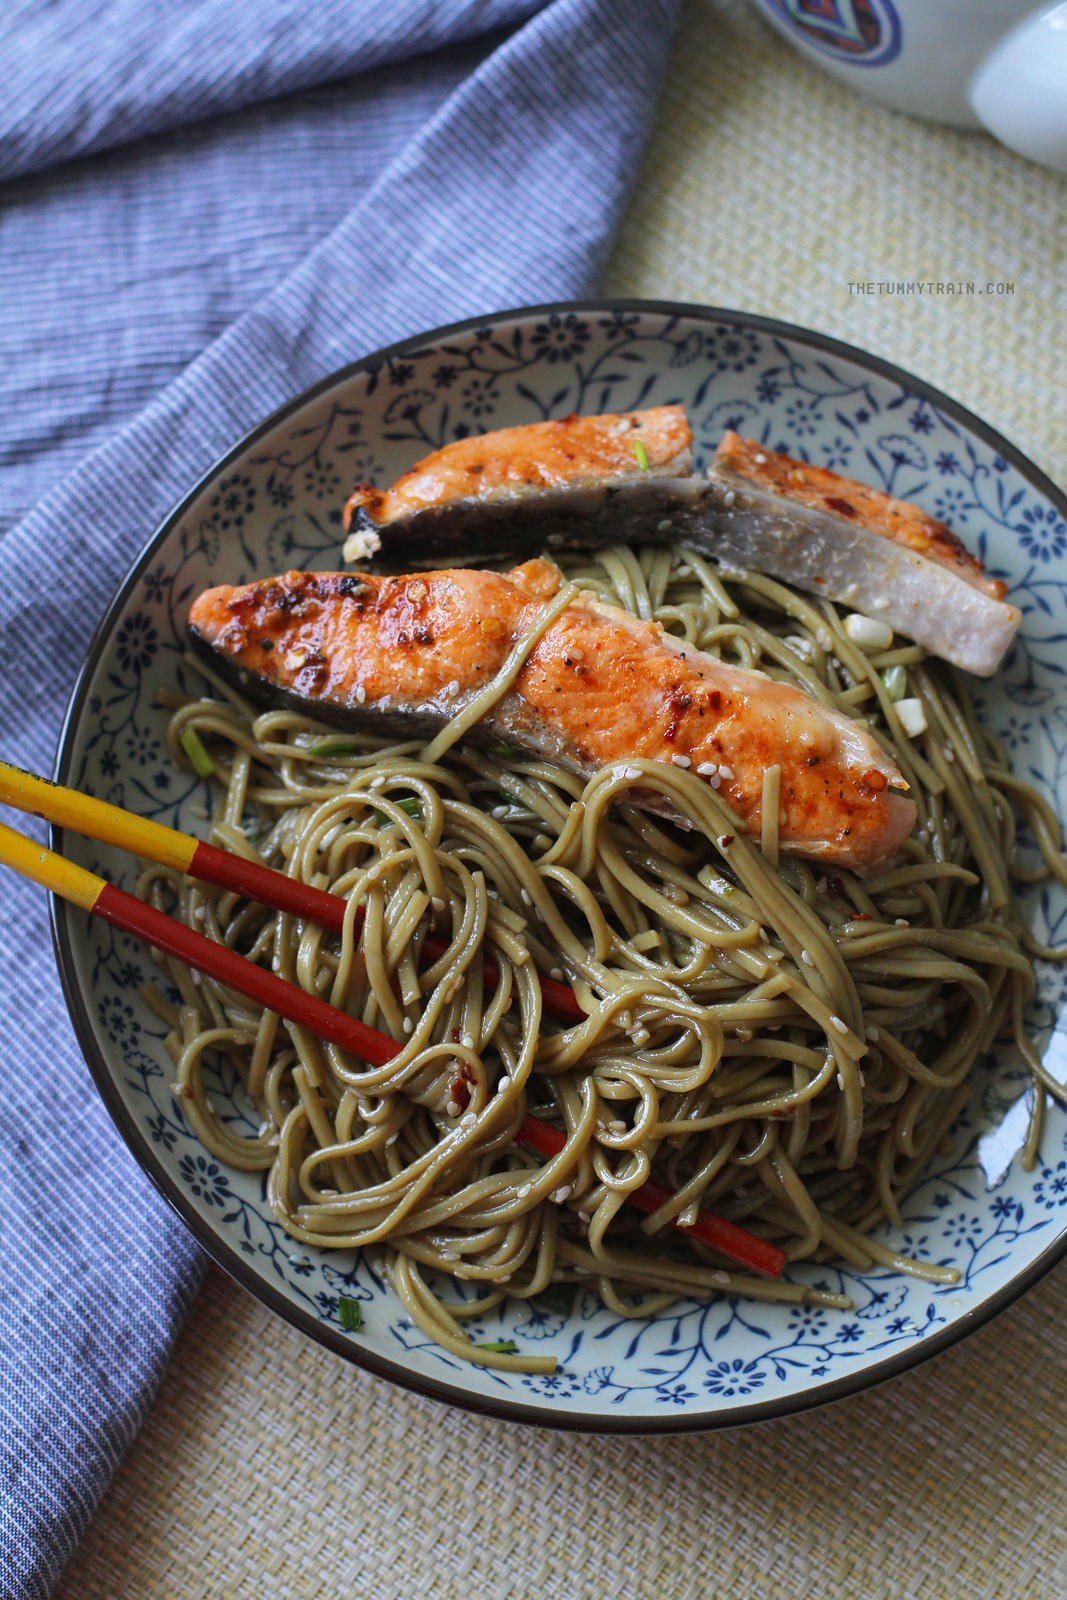 25101196293 084a559f4e h - My favourite Sesame Soba topped with sweet-spicy salmon